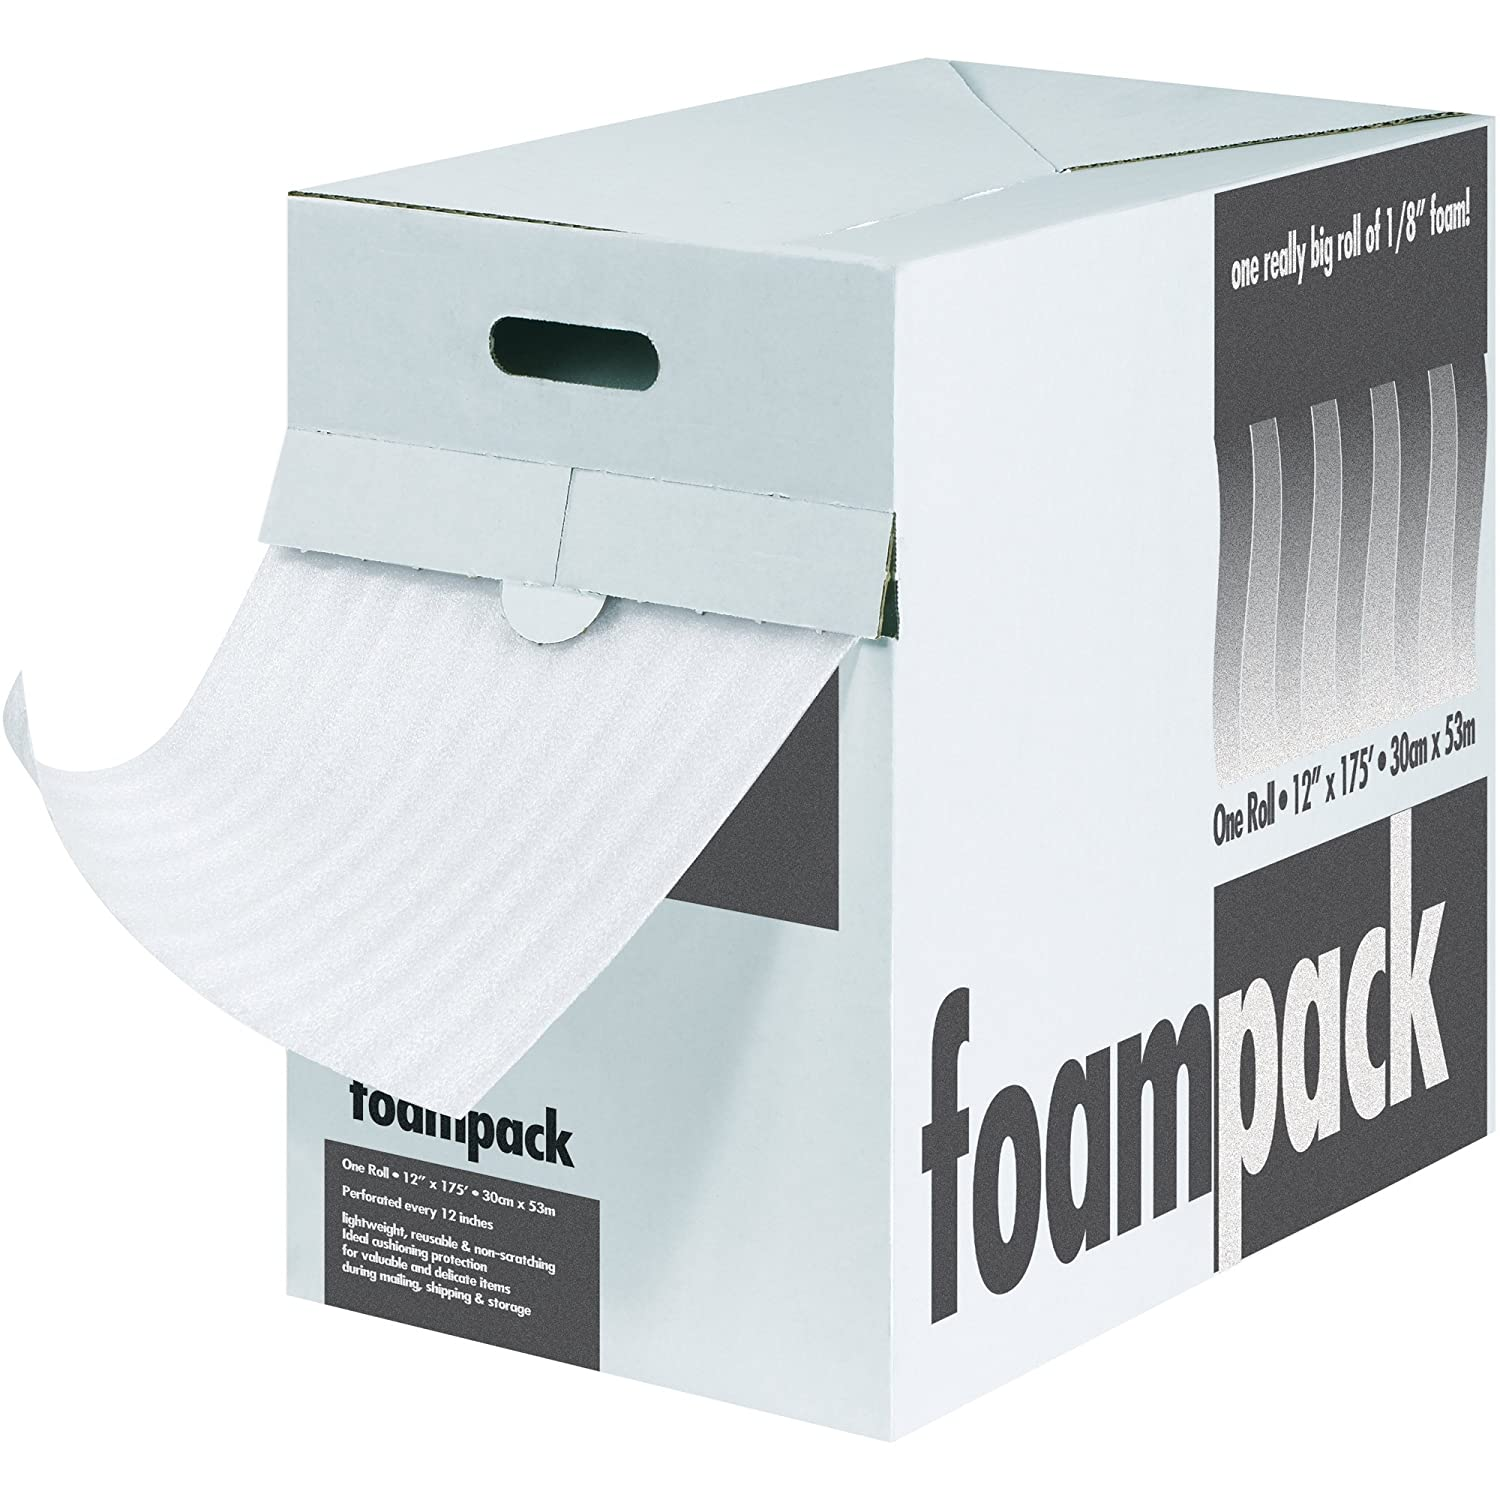 Top Pack Supply Air Foam Dispenser Packs, 1/4' x 12' x 85', White (Pack of 1) 1/4 x 12 x 85' Box Partners TPFD1412